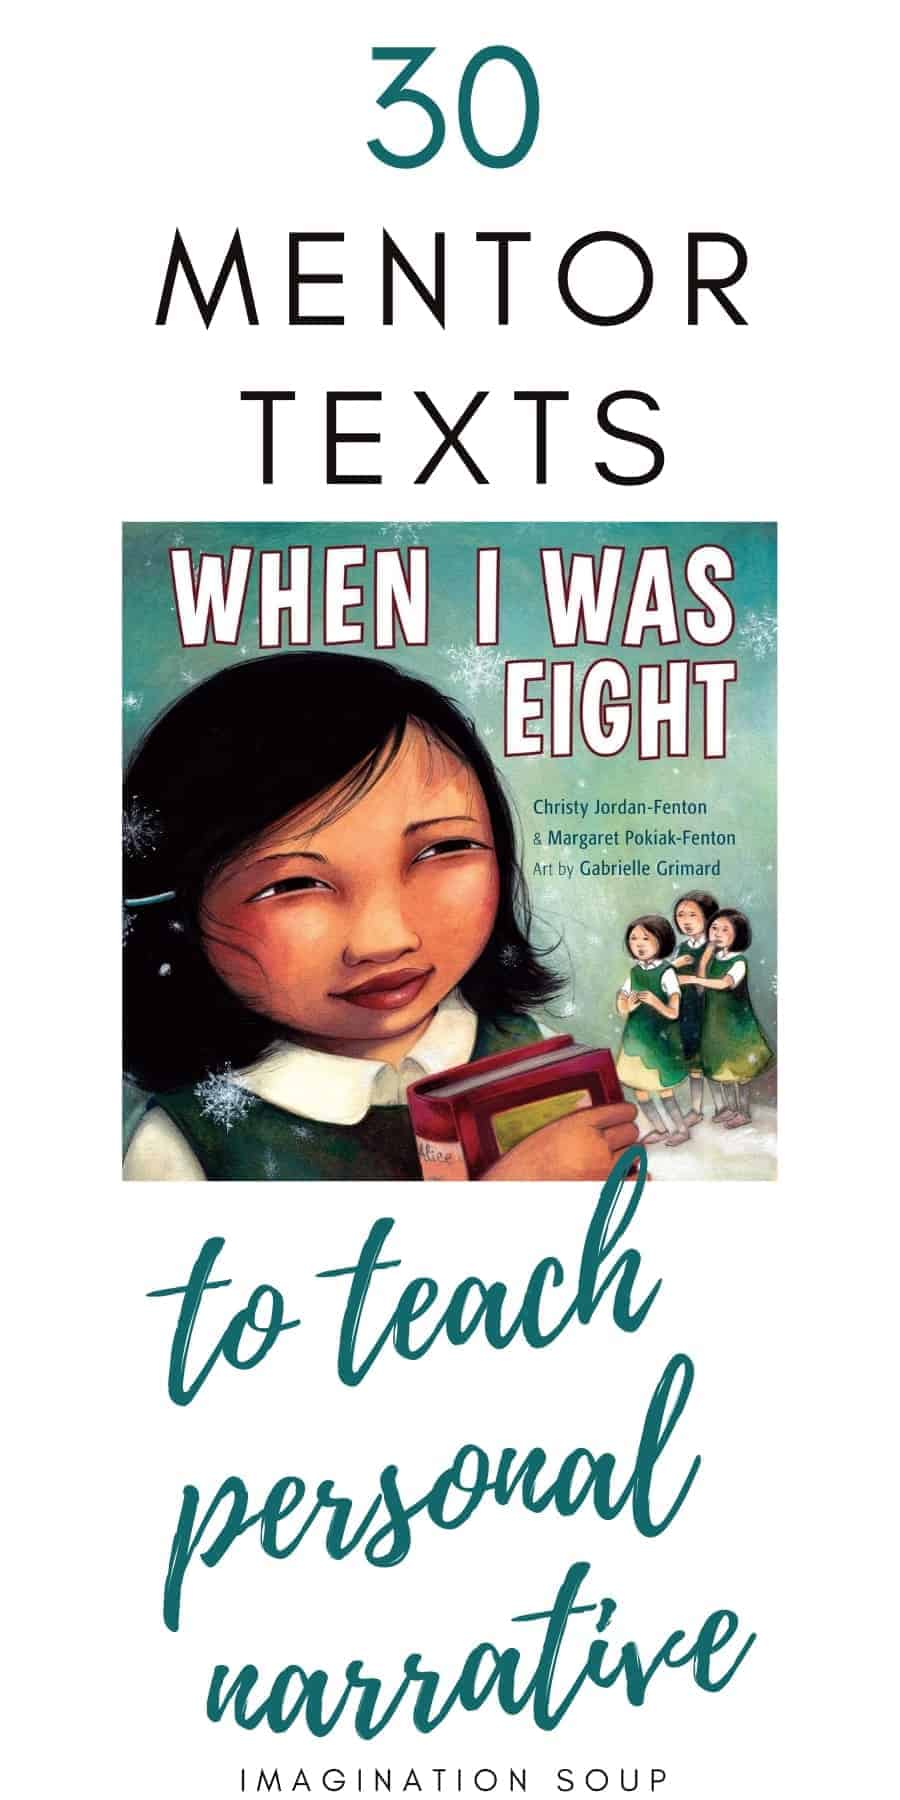 mentor texts to teach personal narrative